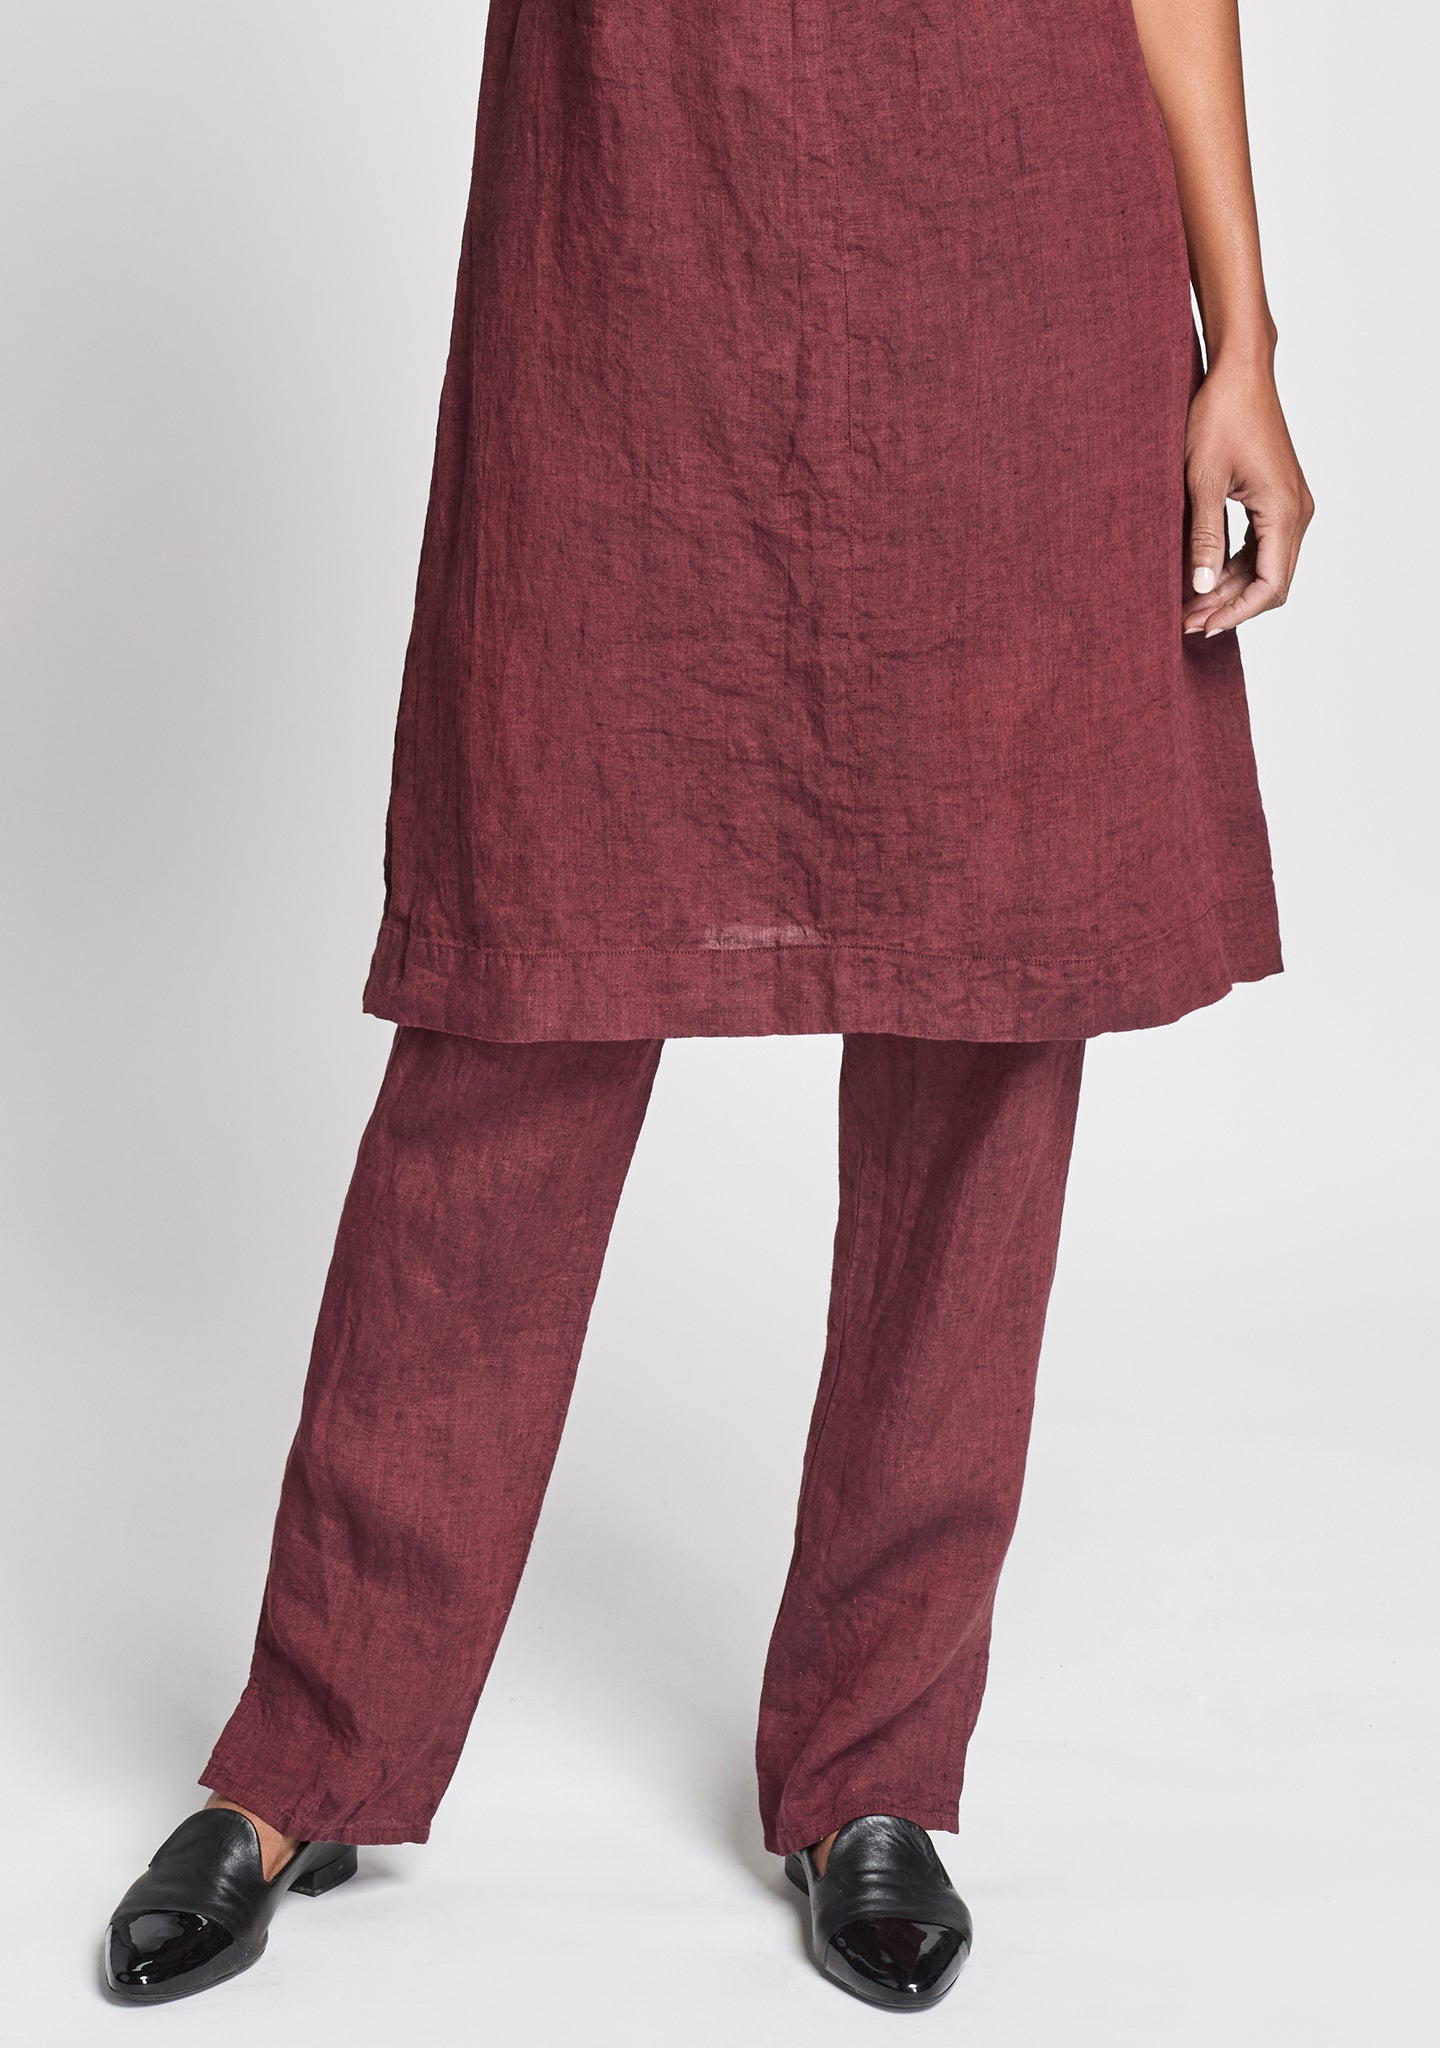 pocketed social pant linen pants with elastic waist red